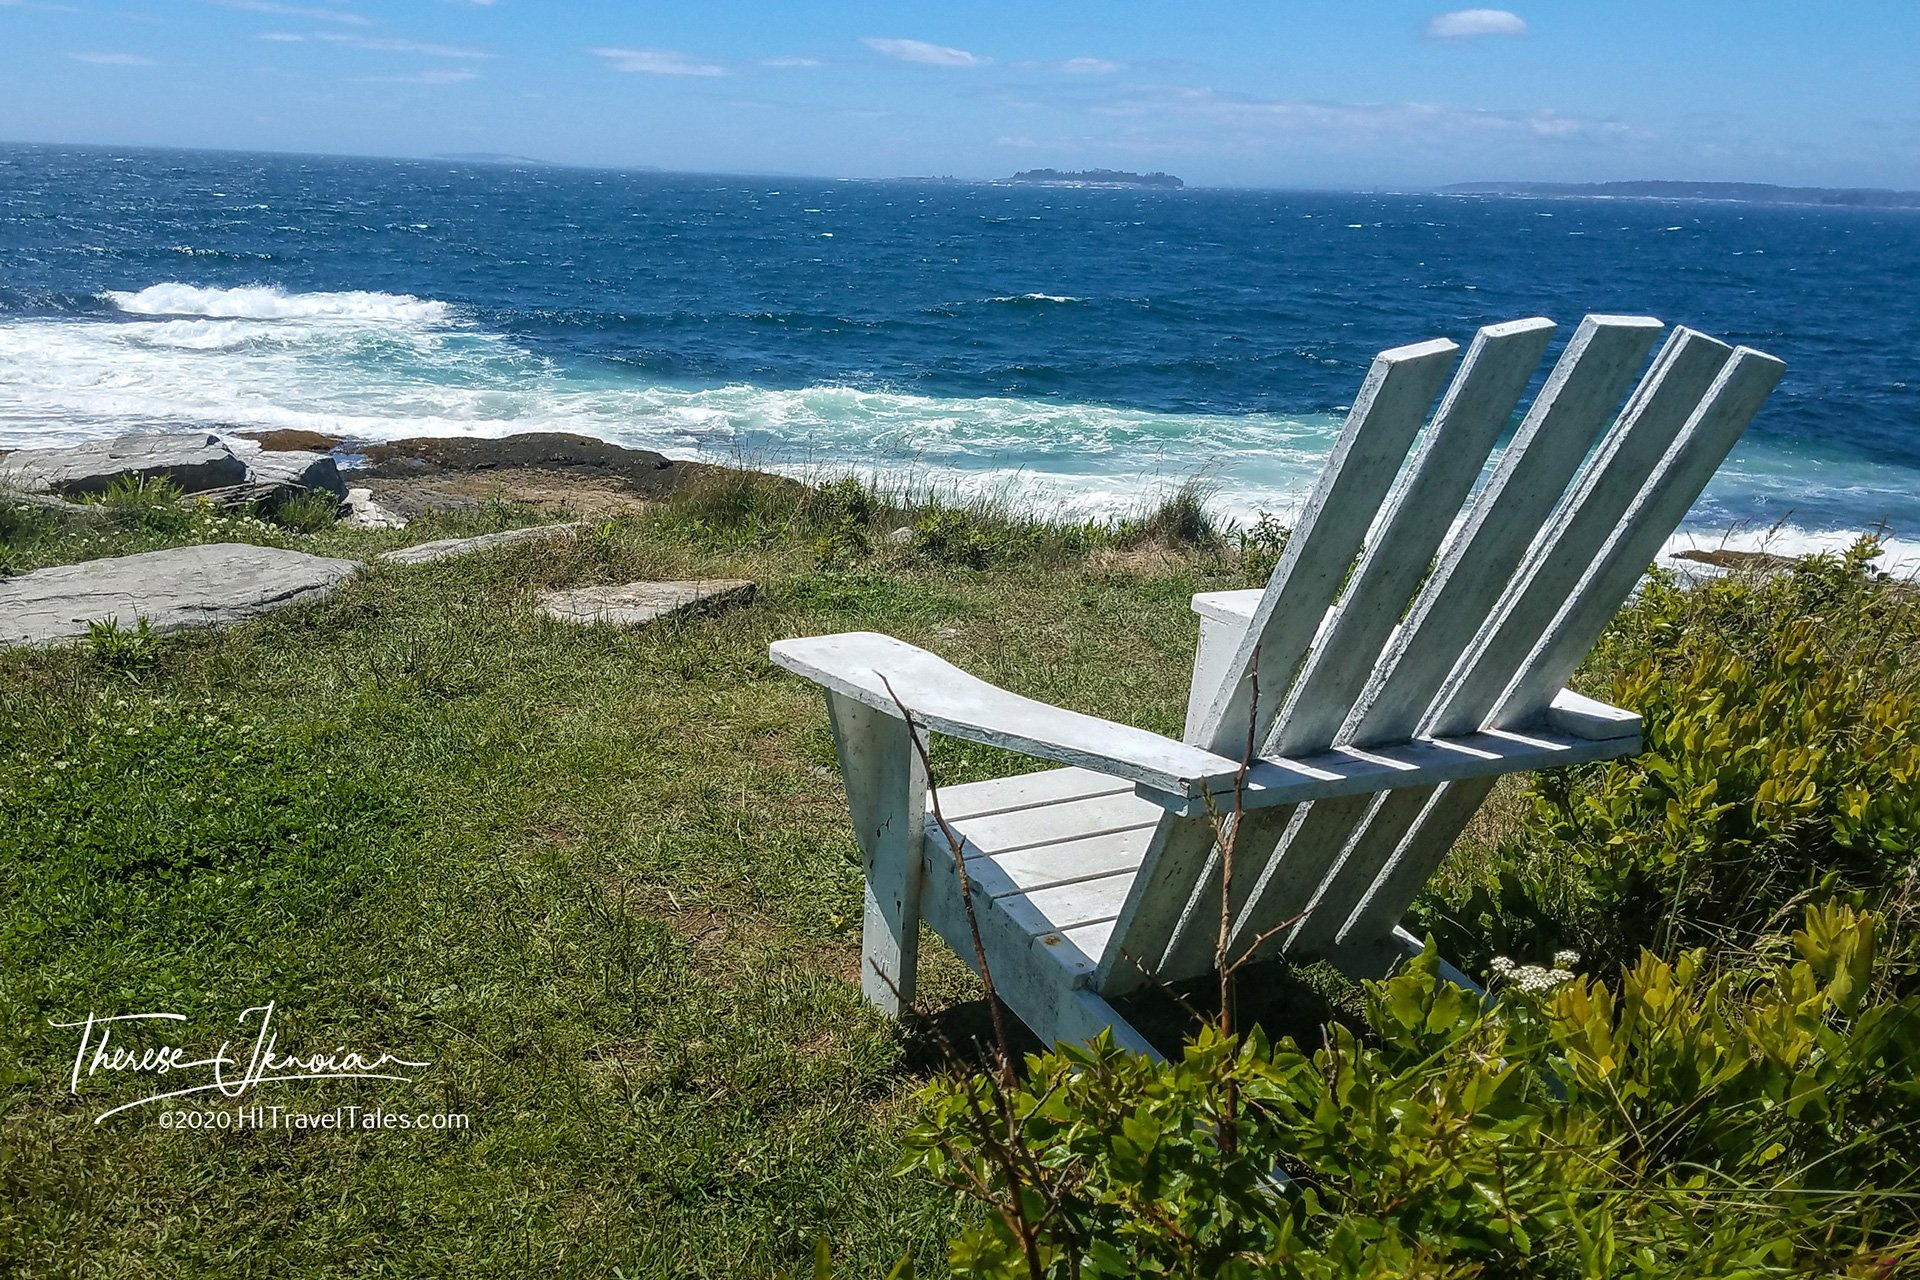 Sighworthy views in MidCoast Maine by Therese Iknoian